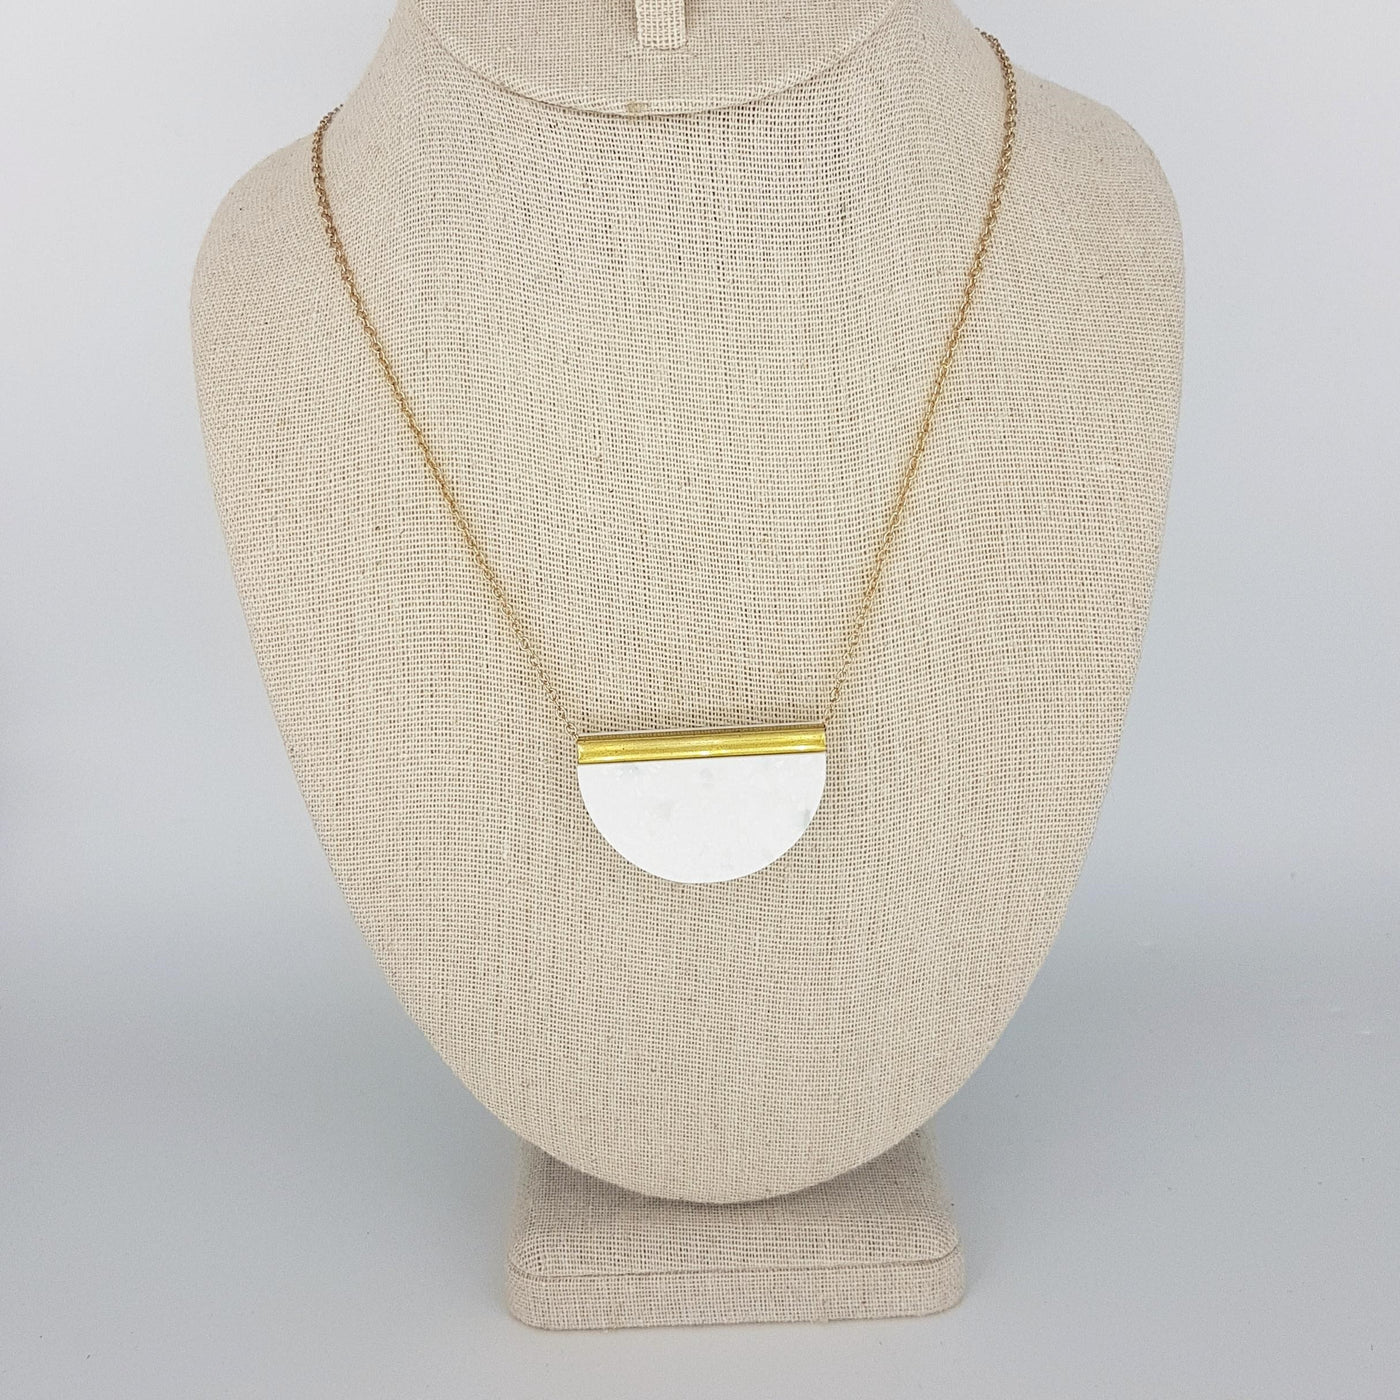 Dconstruct Corian Half Circle Necklace - Winter 18in